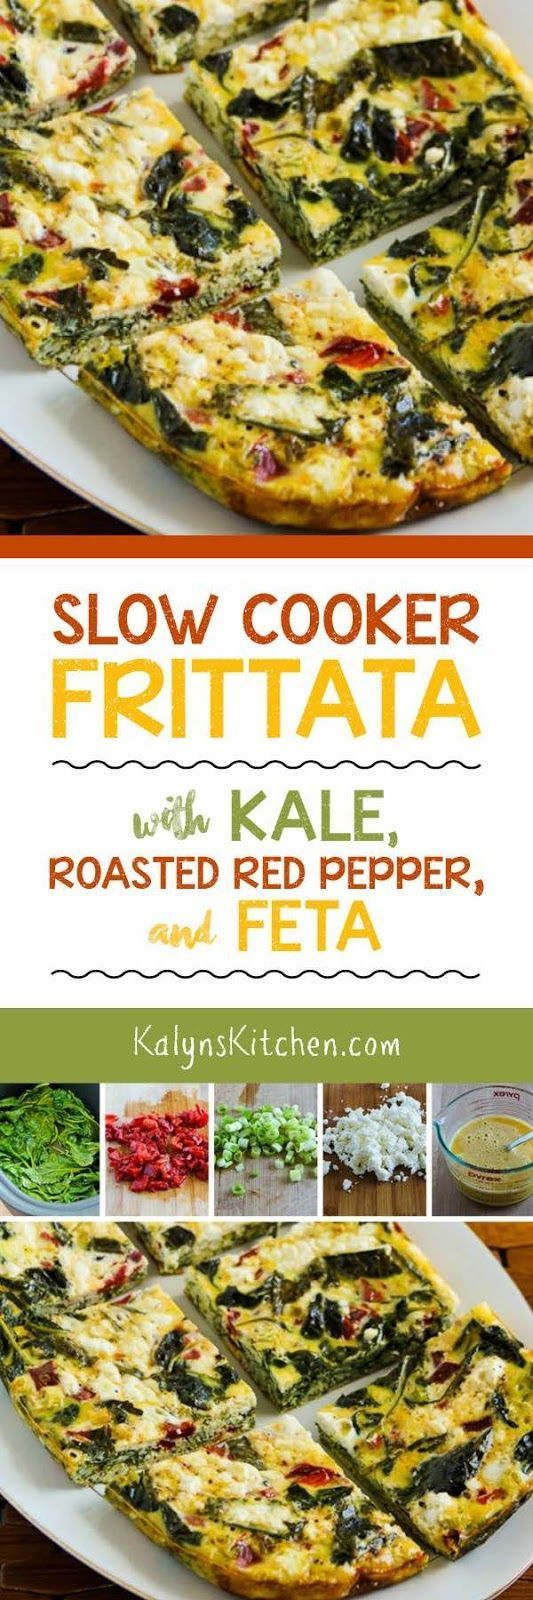 This tasty Slow Cooker Frittata with Kale, Roasted Red Pepper, and ...